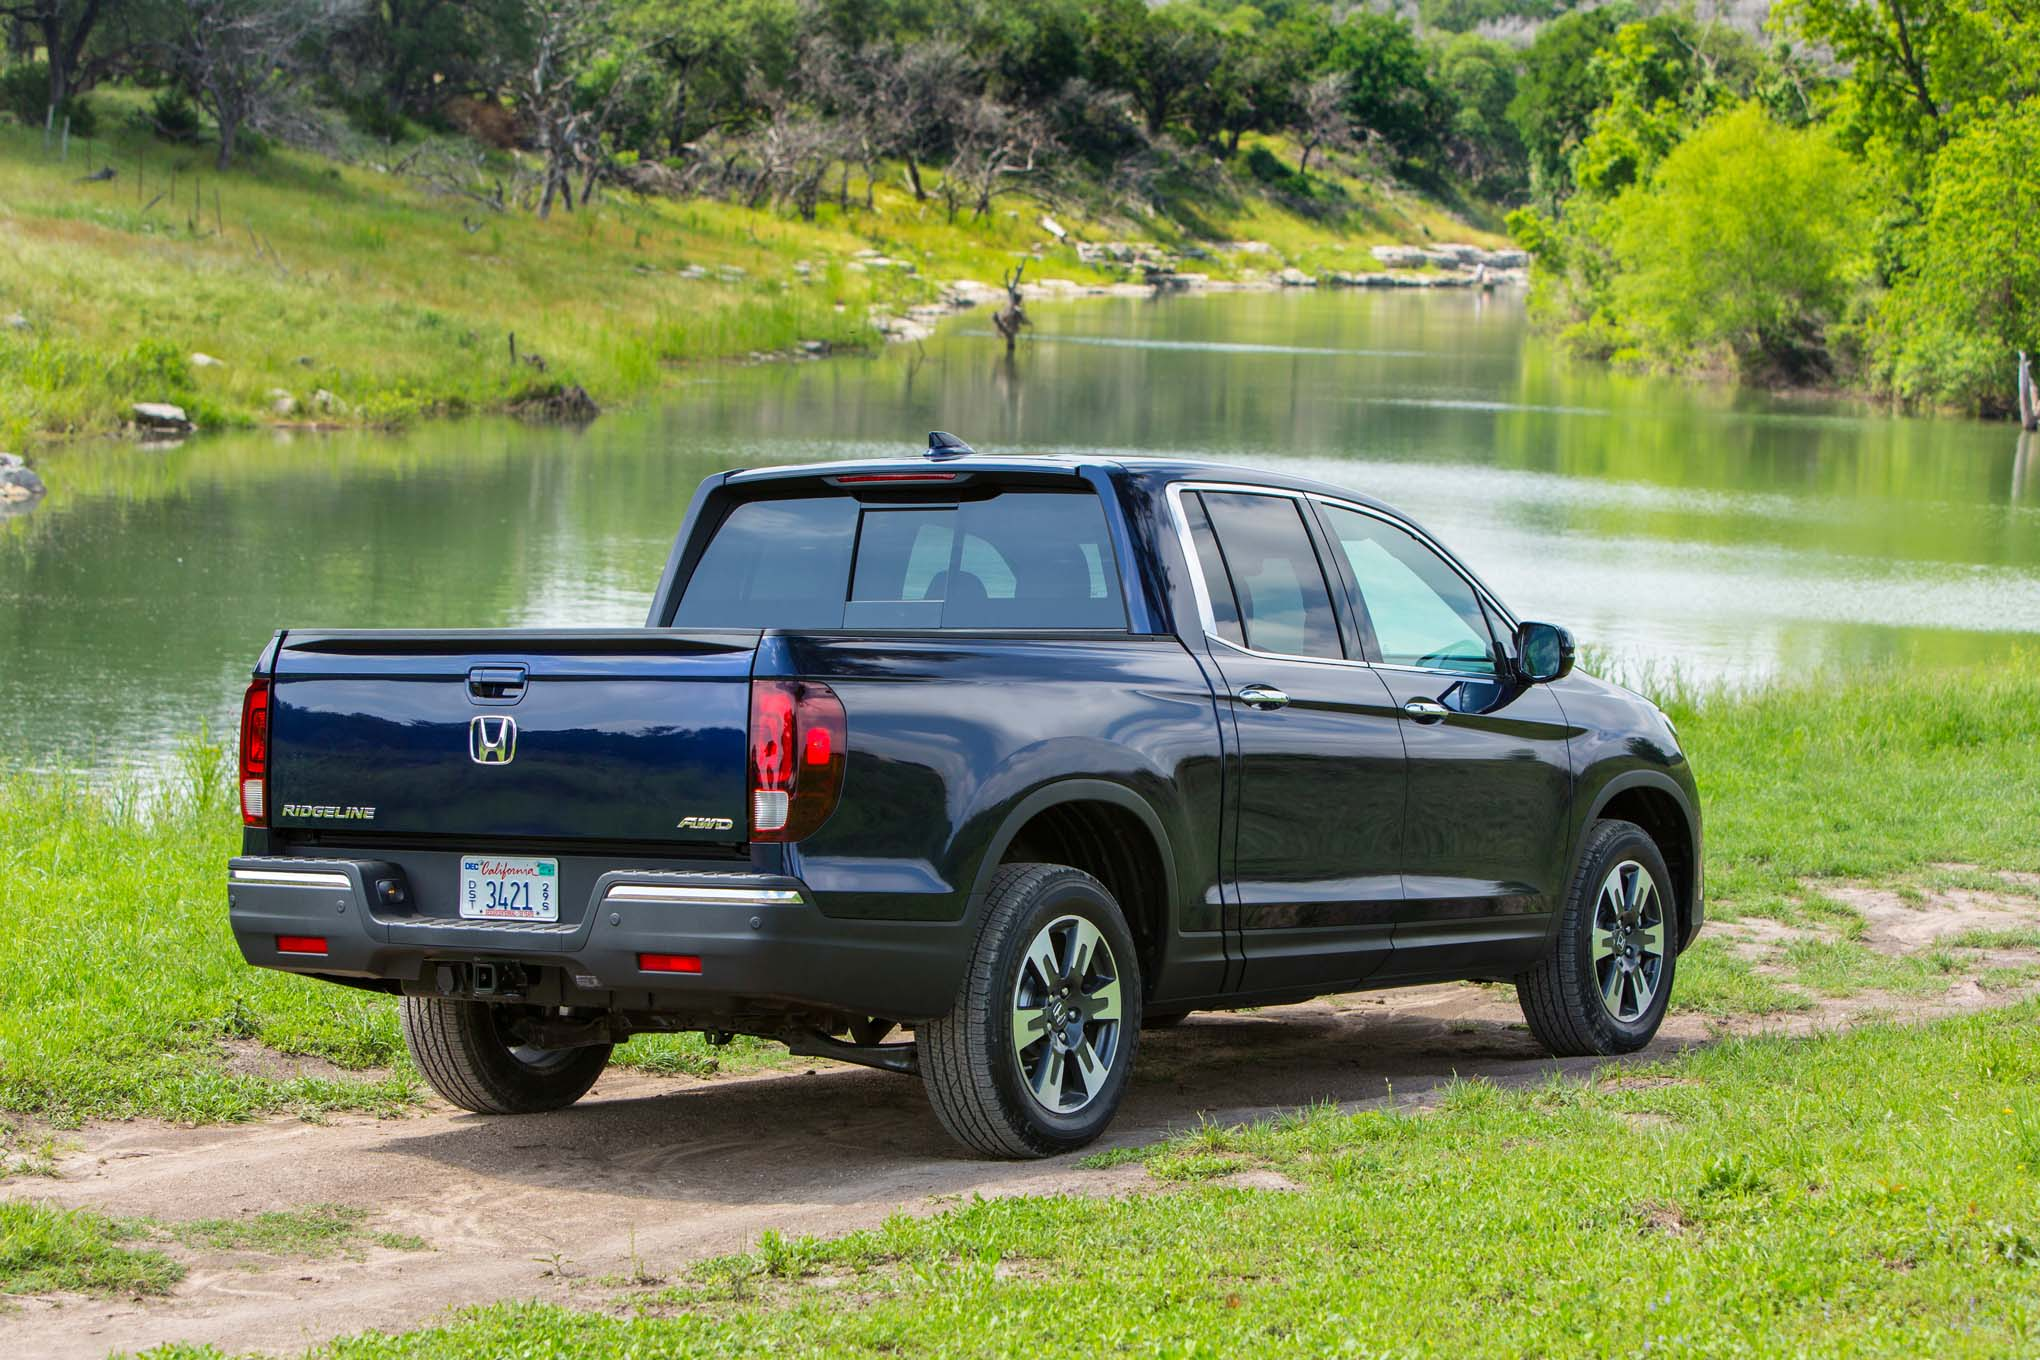 Honda Pilot Towing Capacity >> 2017 Honda Ridgeline Starts at $30,375